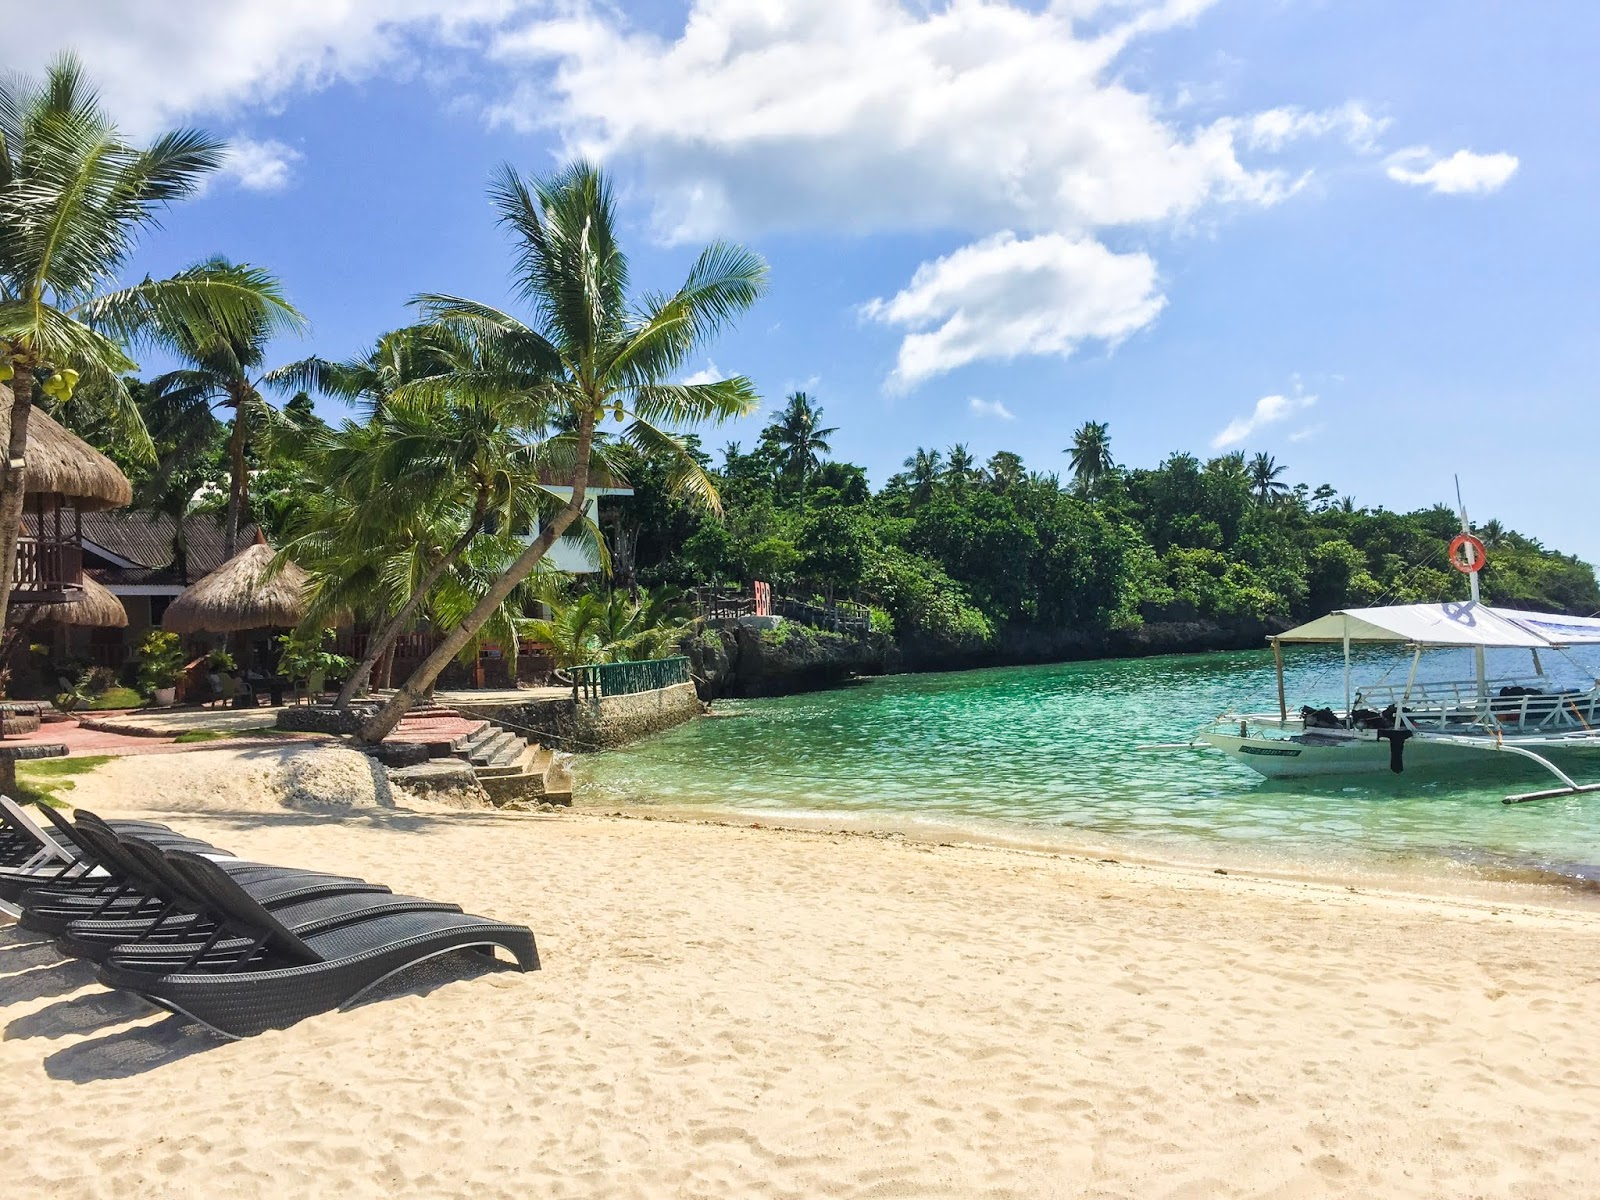 Camotes Island - one of the must-visit tourist attractions in Cebu